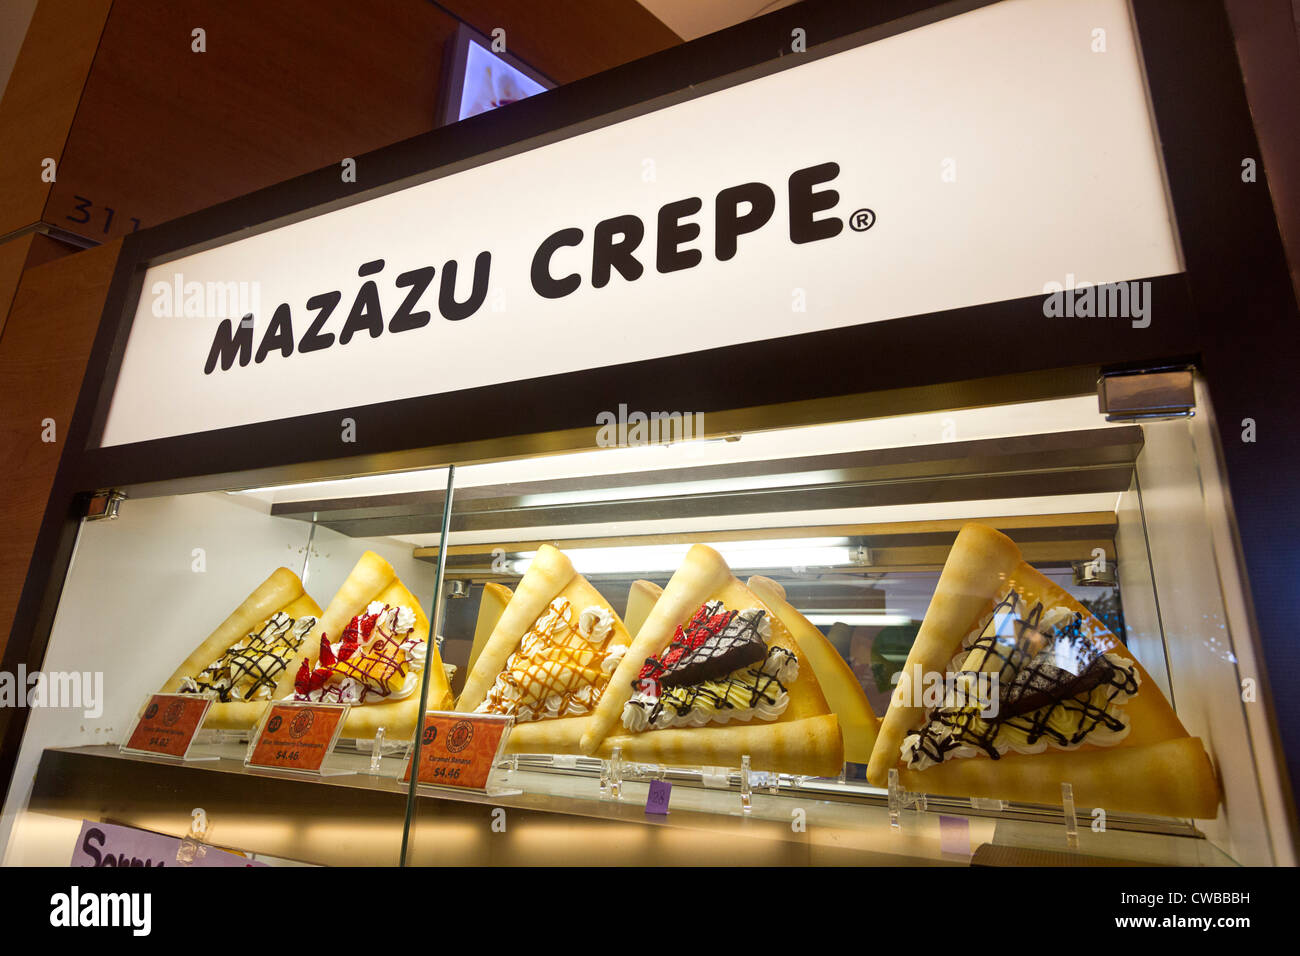 Dessert crepes for sale in a Richmond, BC, Canada shopping mall. - Stock Image